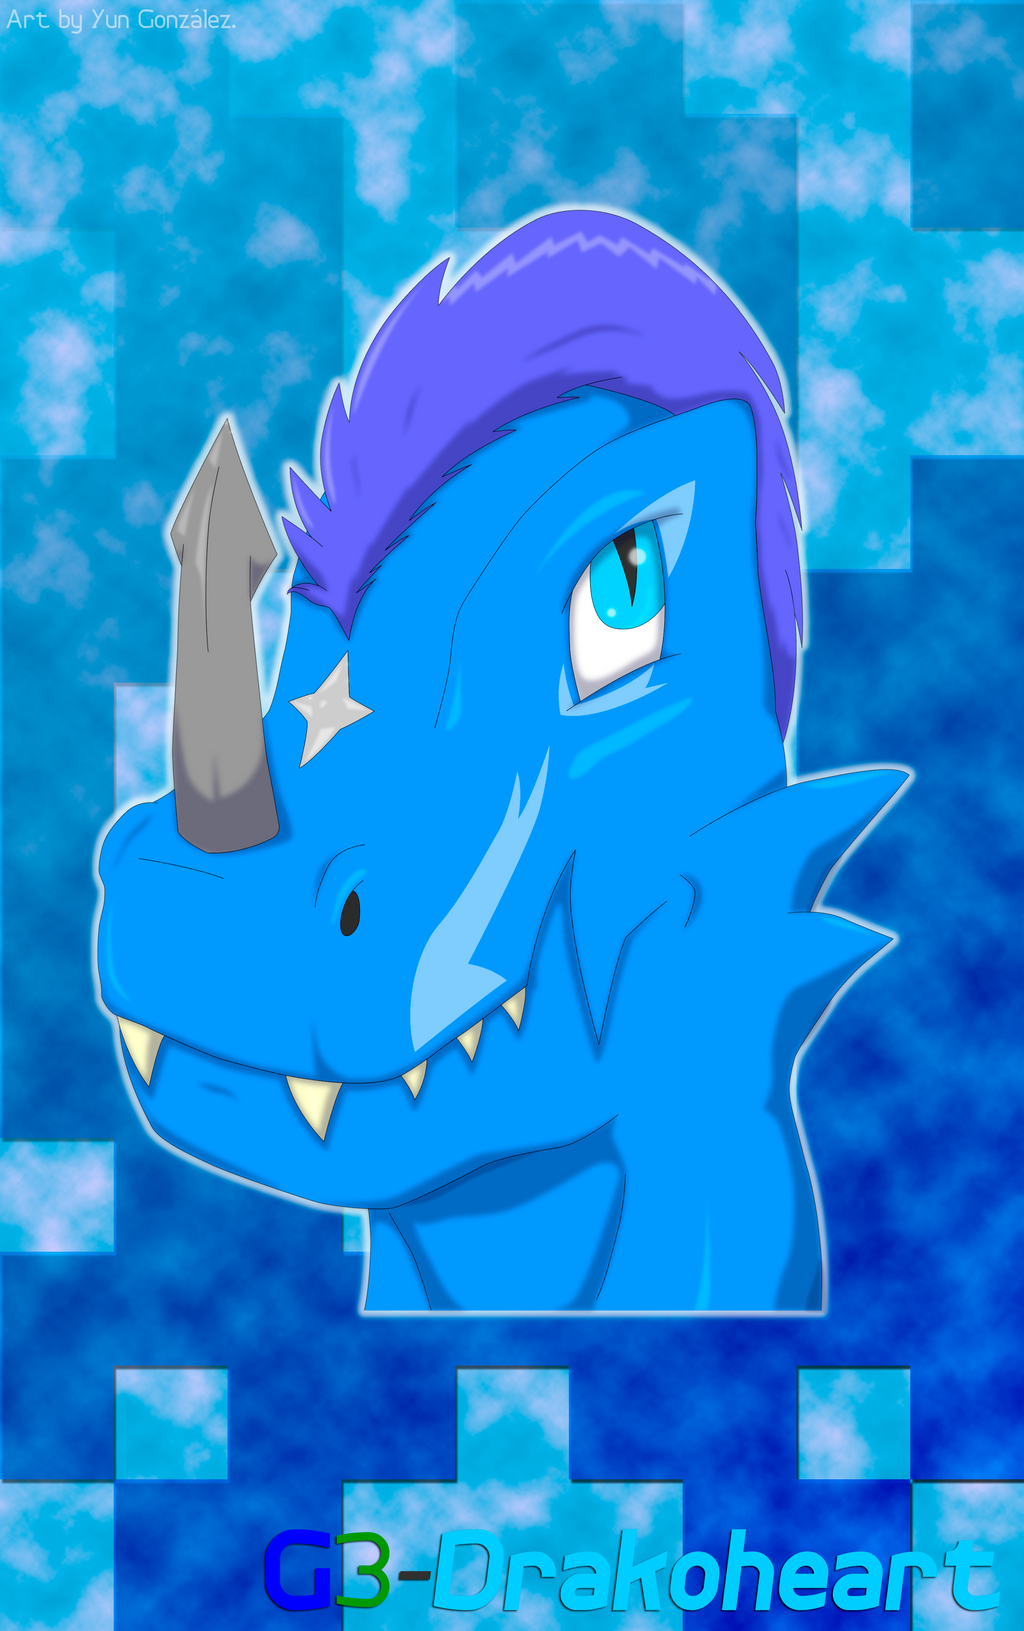 Auralino headshot avatar by G3Drakoheart-Arts